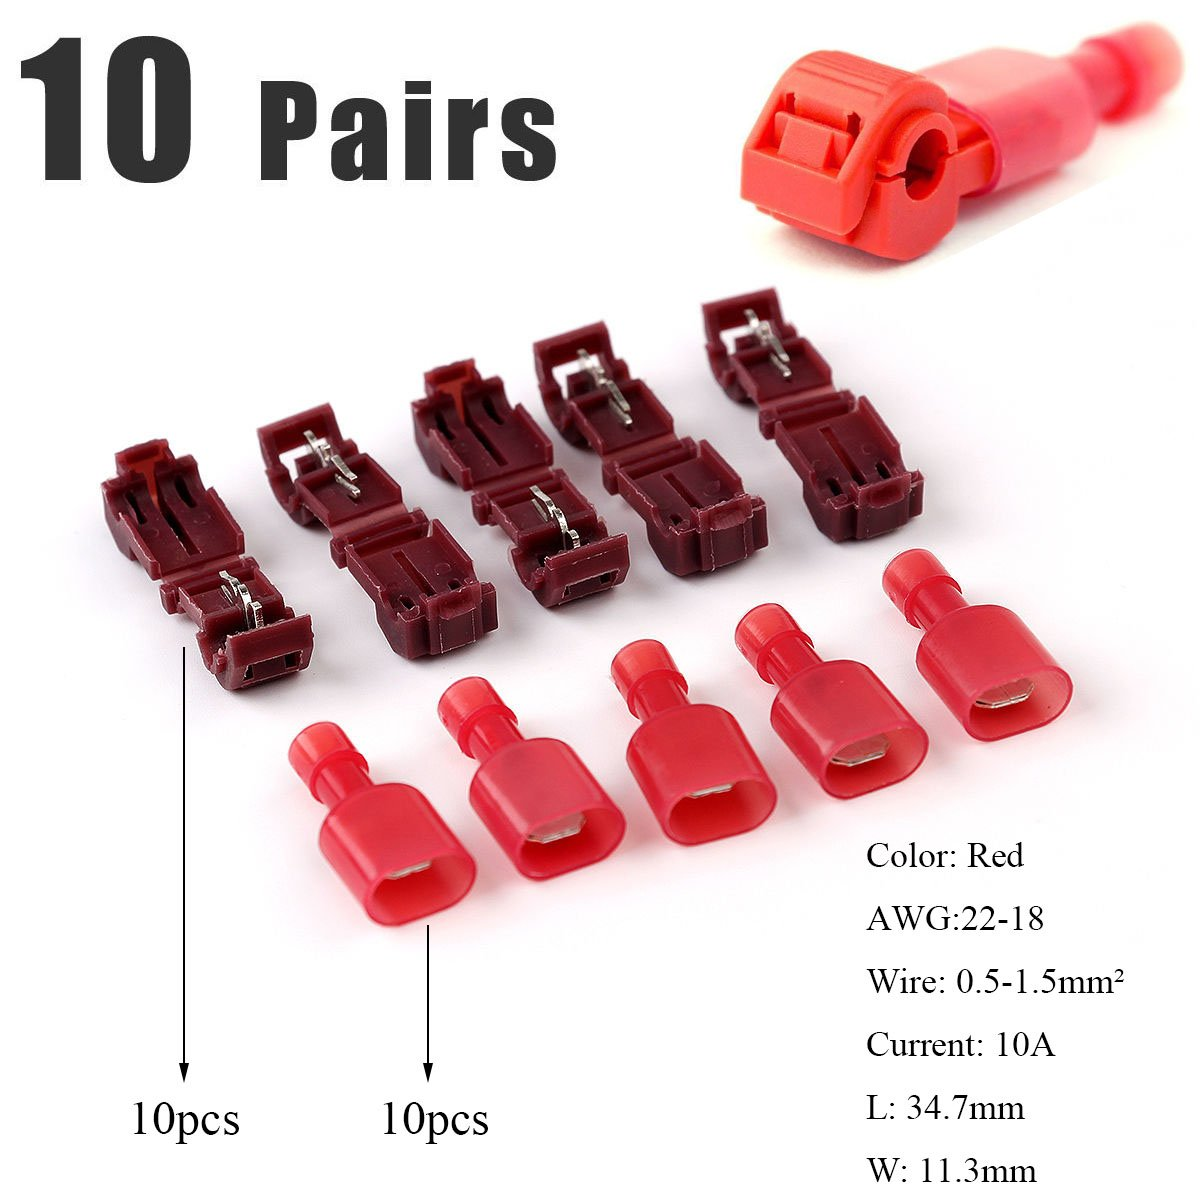 Gasea 60pcs T-Tap Connectors Quick Splice Spade Wire Connectors Electrical Wire Crimp Terminals Self-Stripping with Nylon Fully Insulated Male Quick Disconnects Kit,30 Pairs